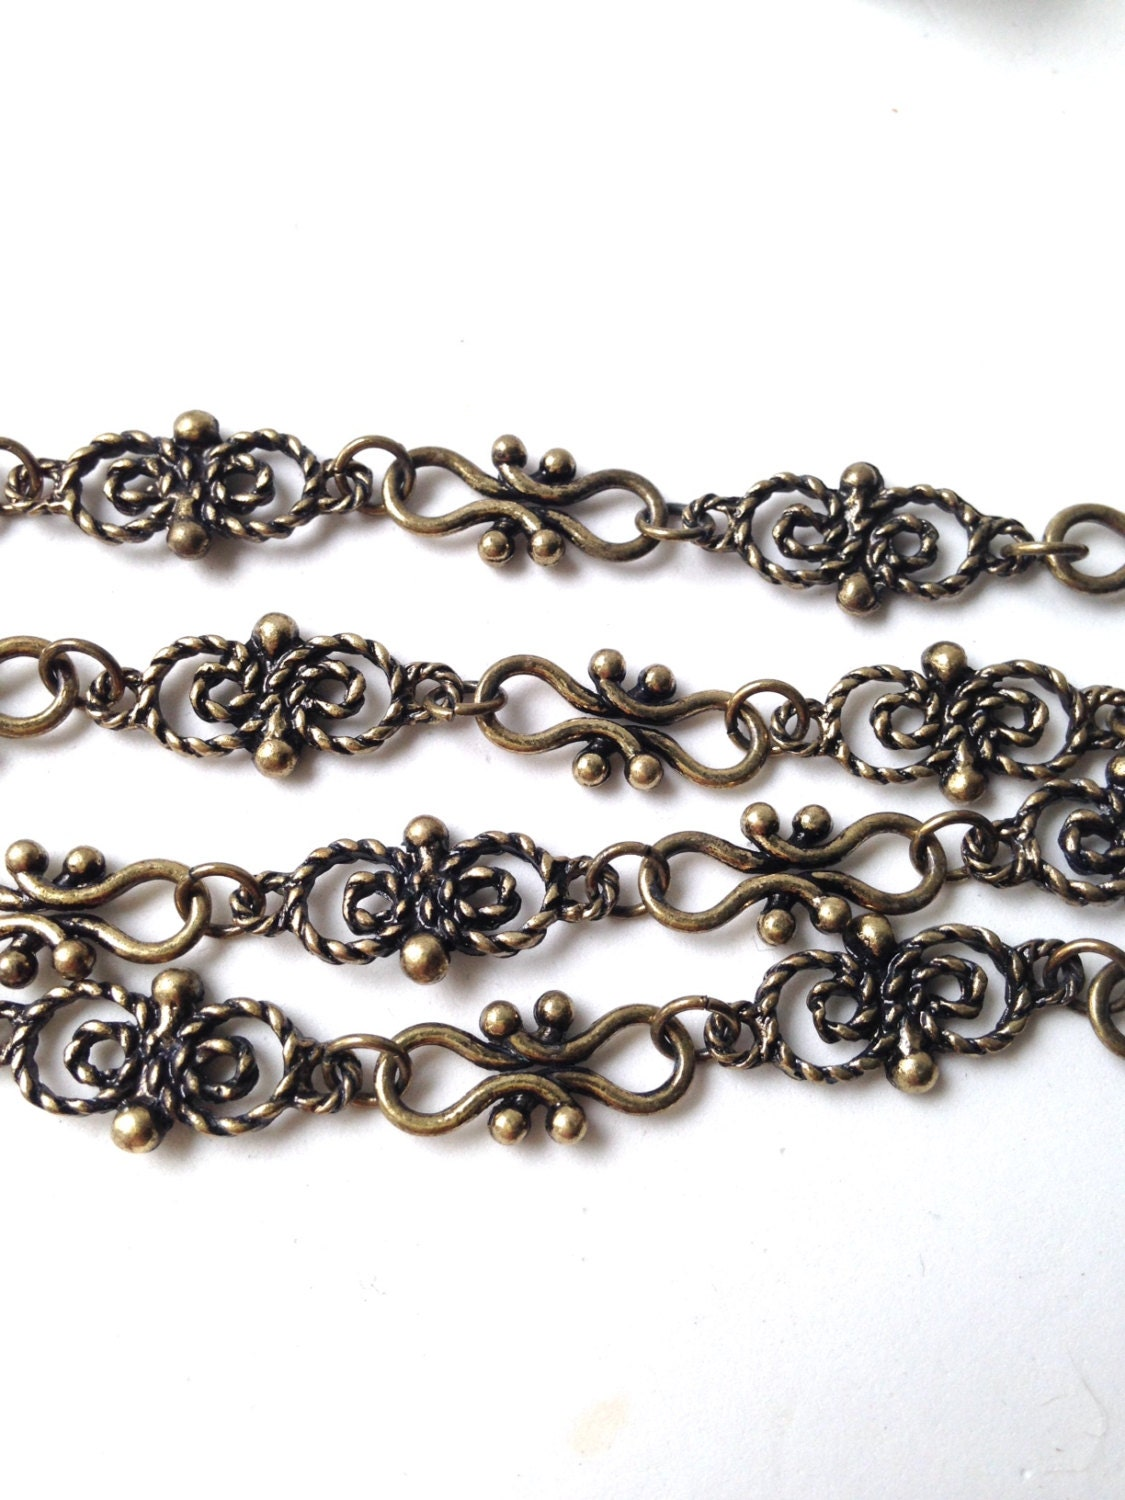 Antique Bronze Chain Butterfly Link Chain Hammered Sold By